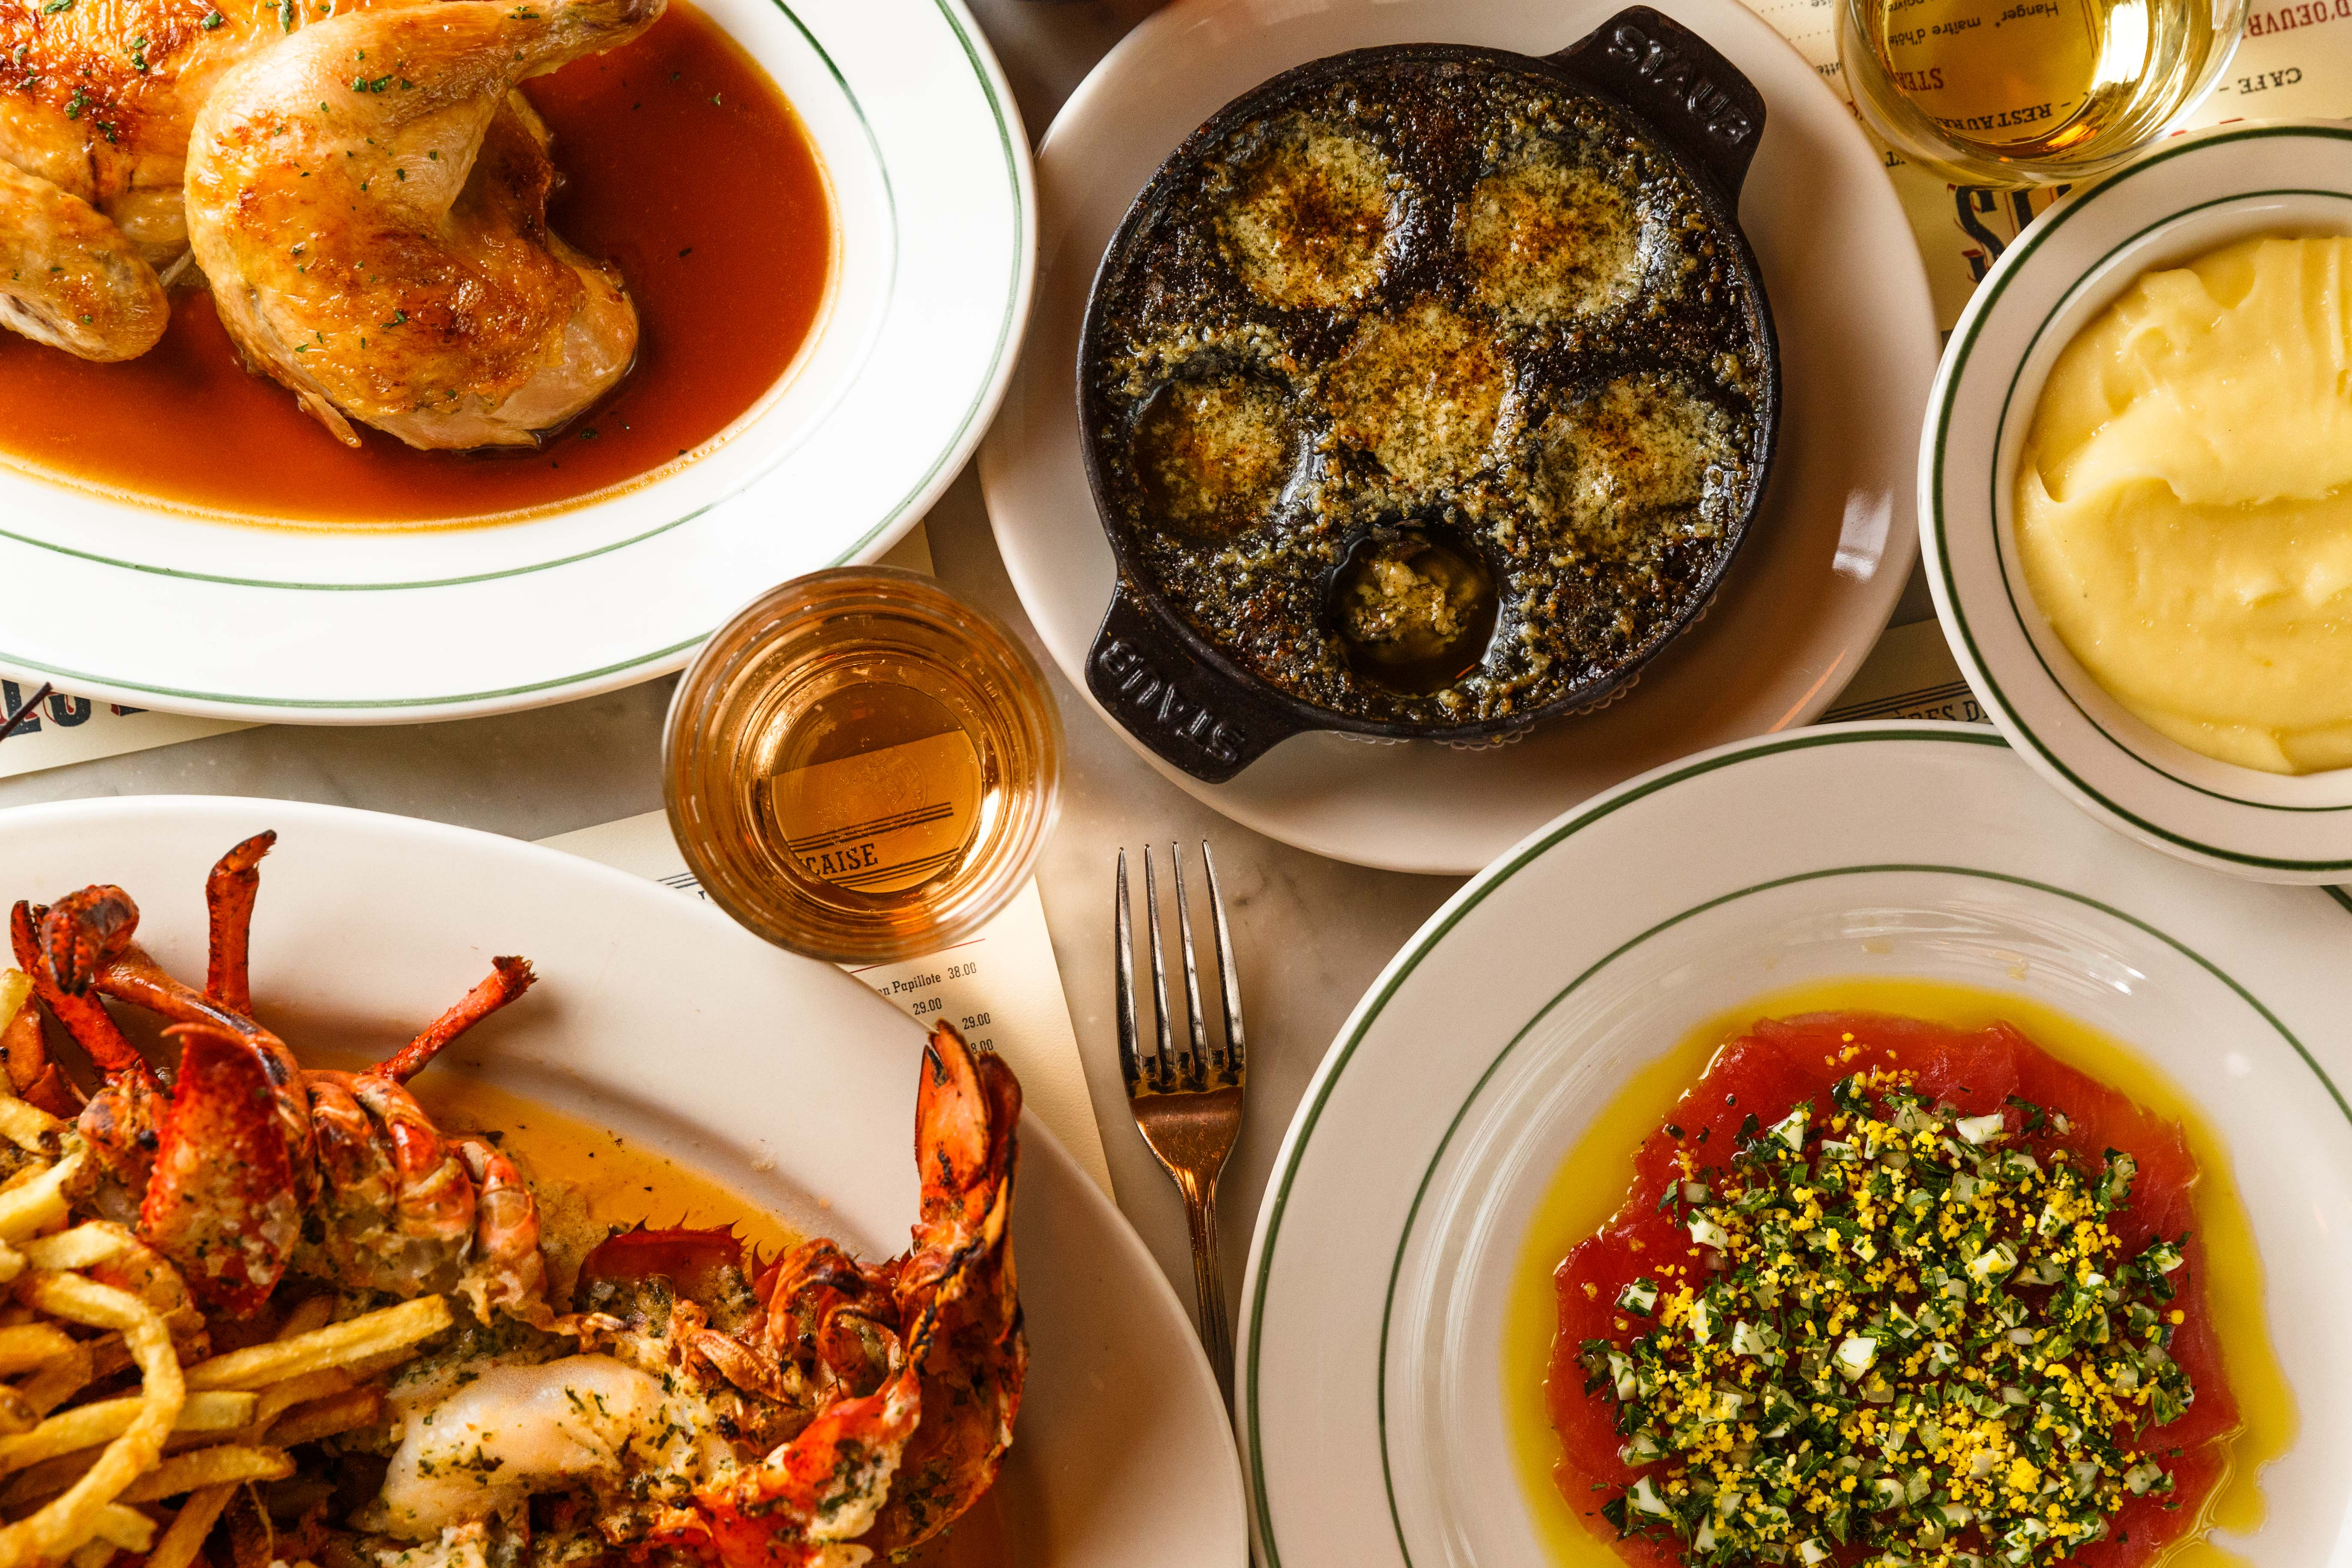 A spread of dishes sit on a table at Pastis, including golden roast chicken, buttered lobster, snails, and crimson raw tuna